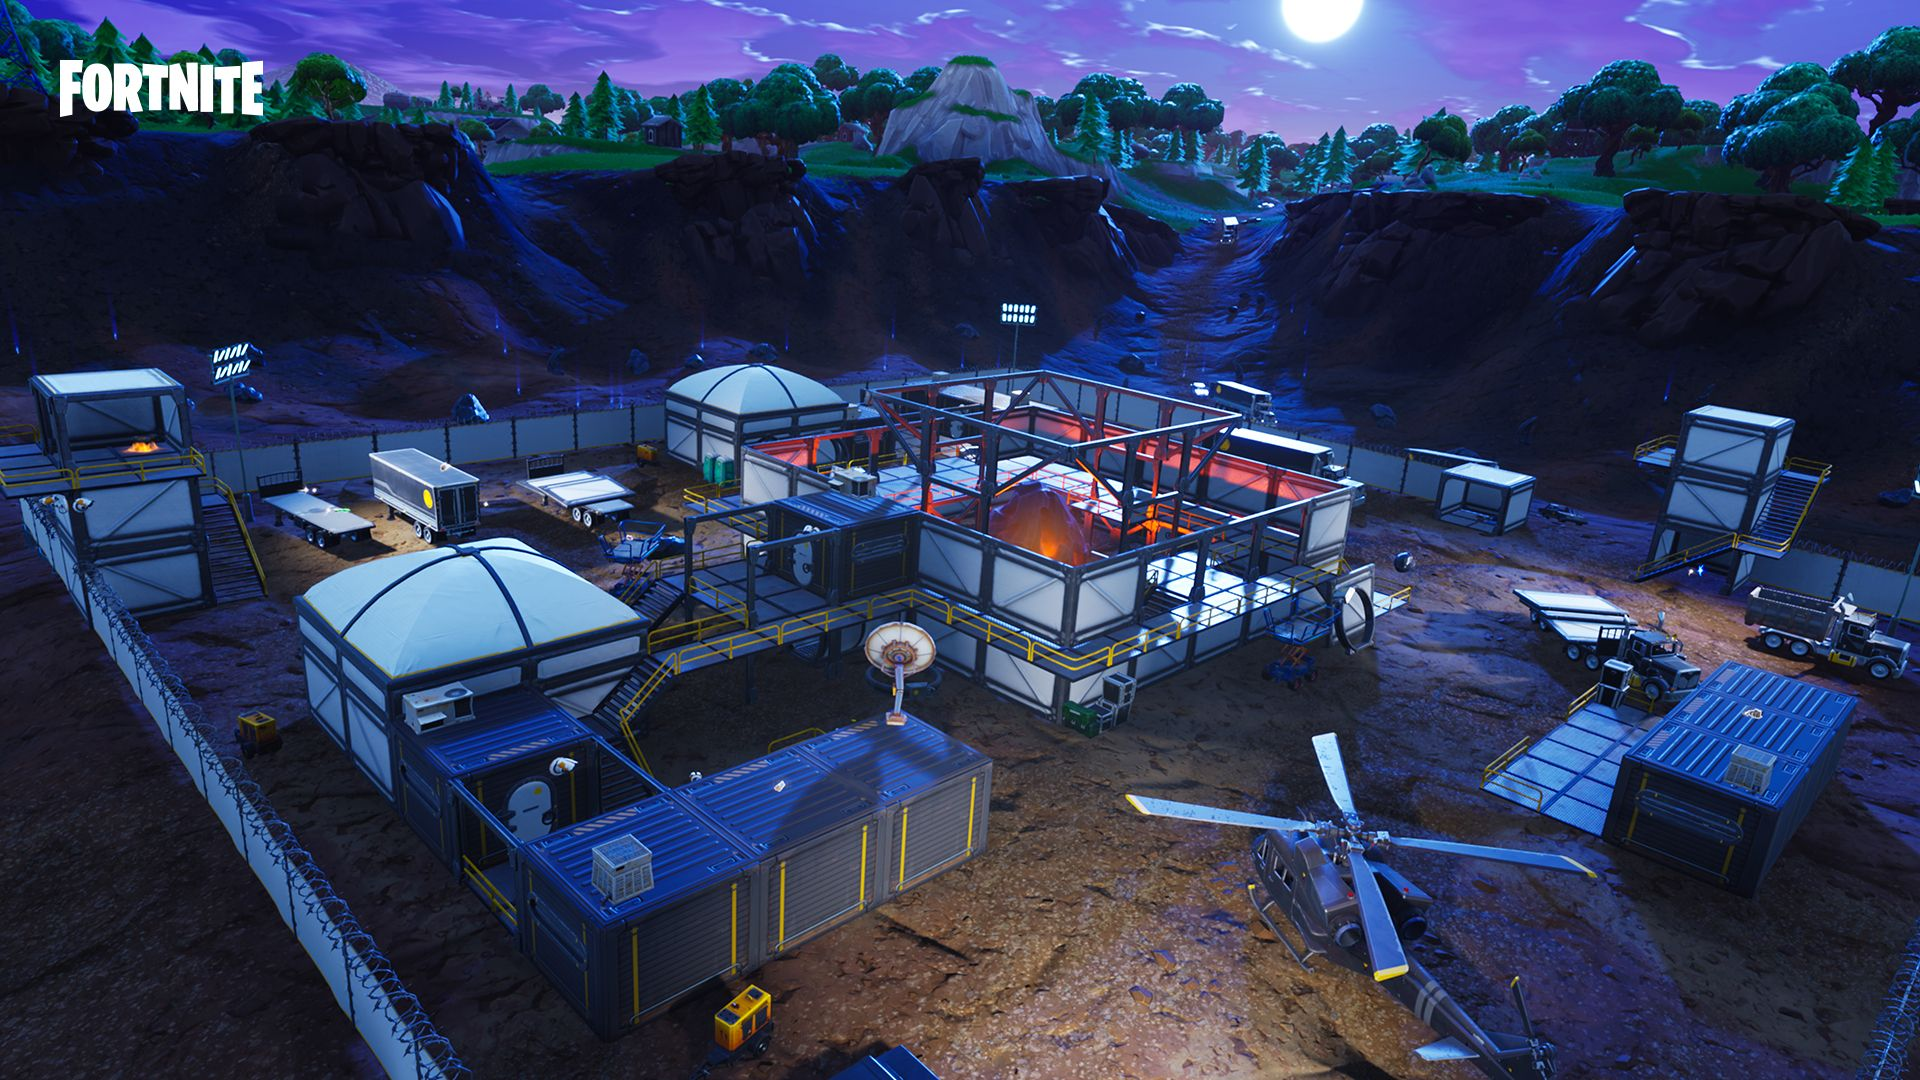 fortnite 4 5 update map leak shows new buildings a missing rocket - fortnite new dusty divot